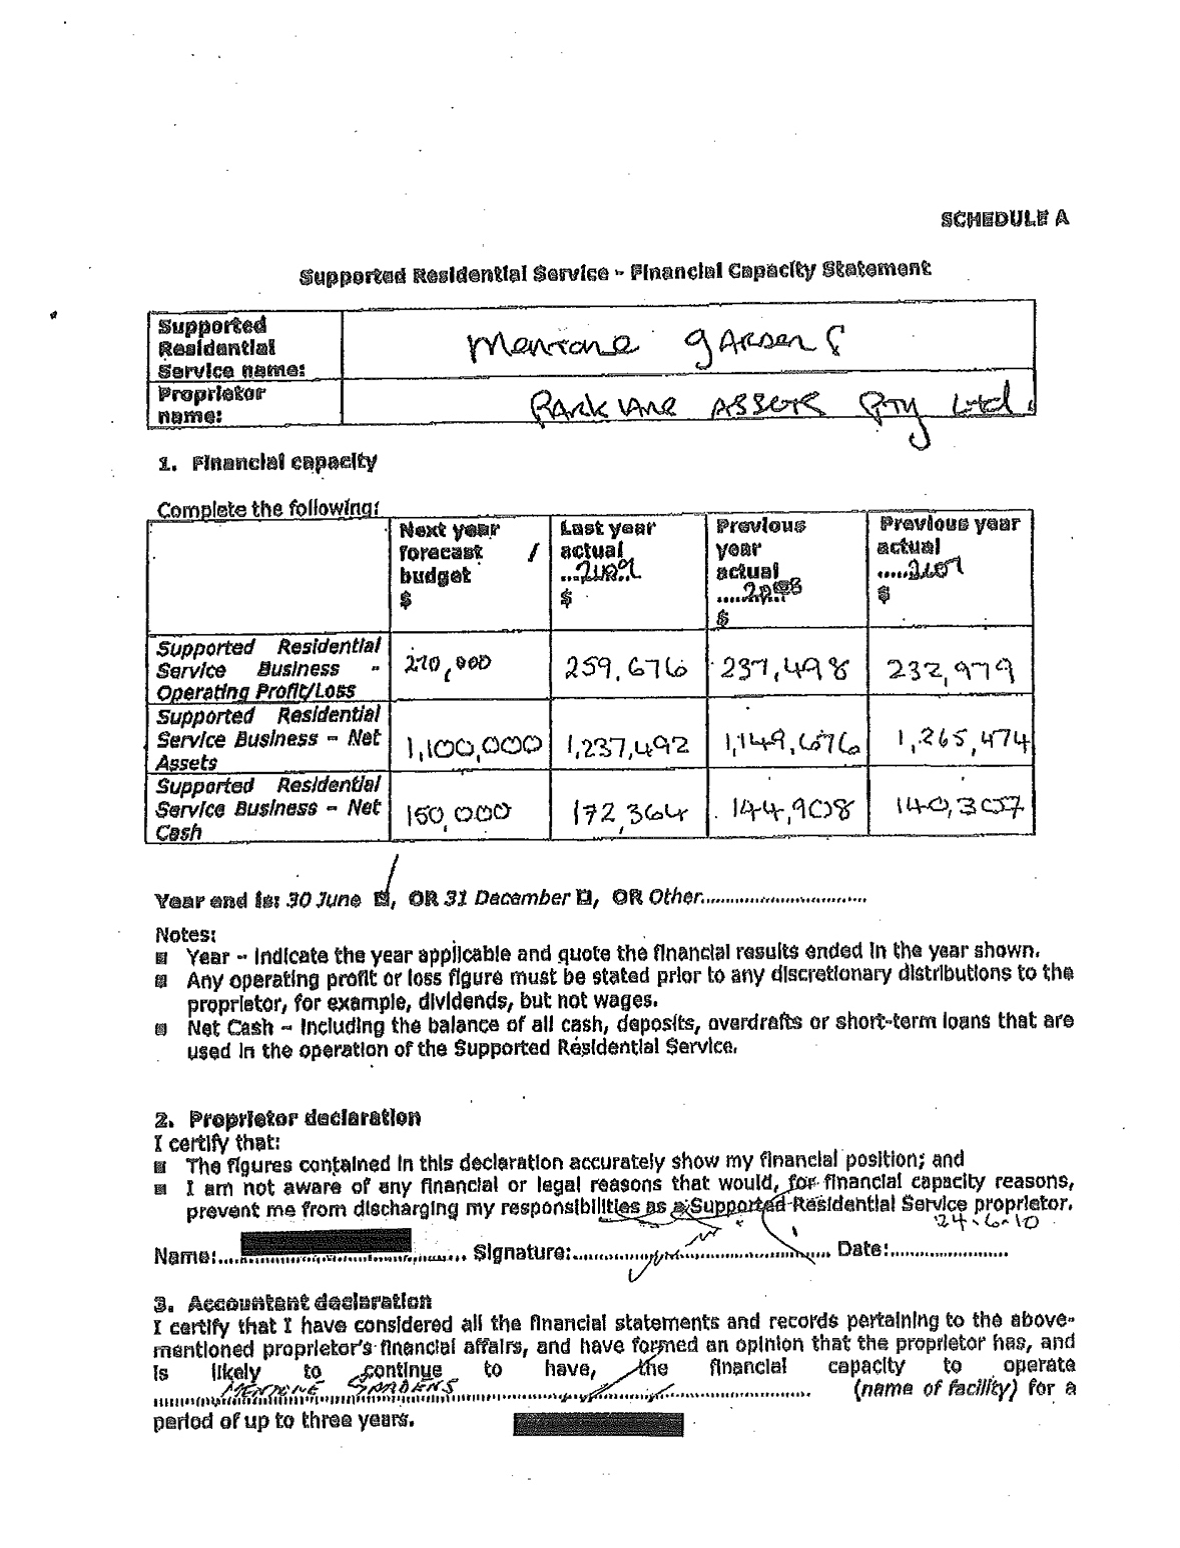 Example of a template form dated 24.6.2010.